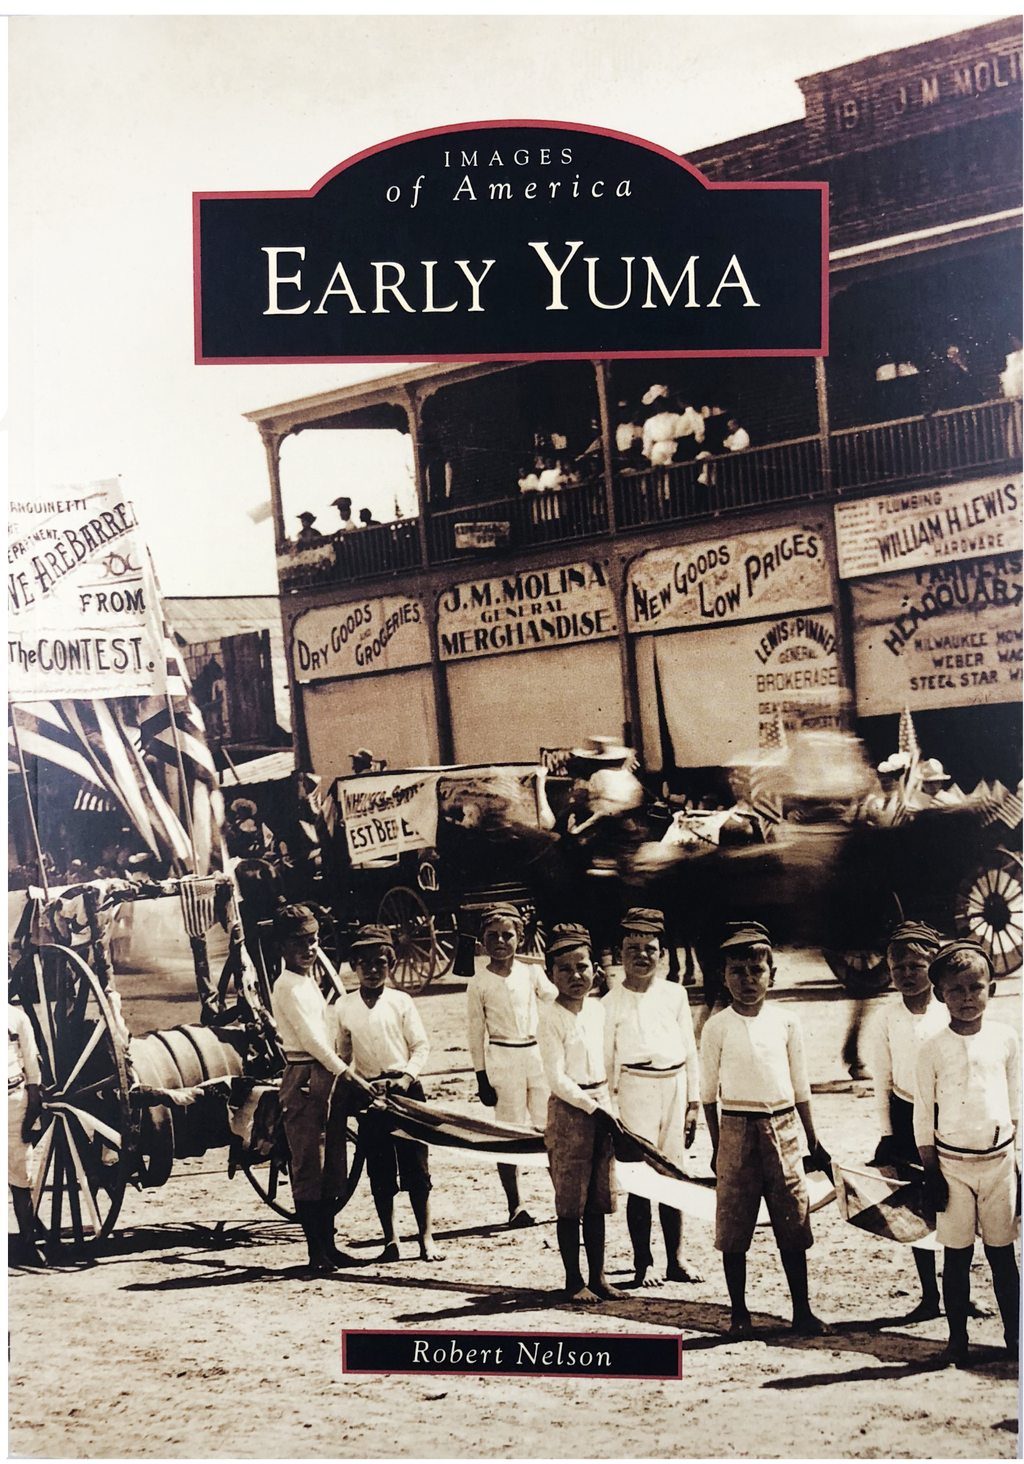 Images of America: Early Yuma By Robert Nelson